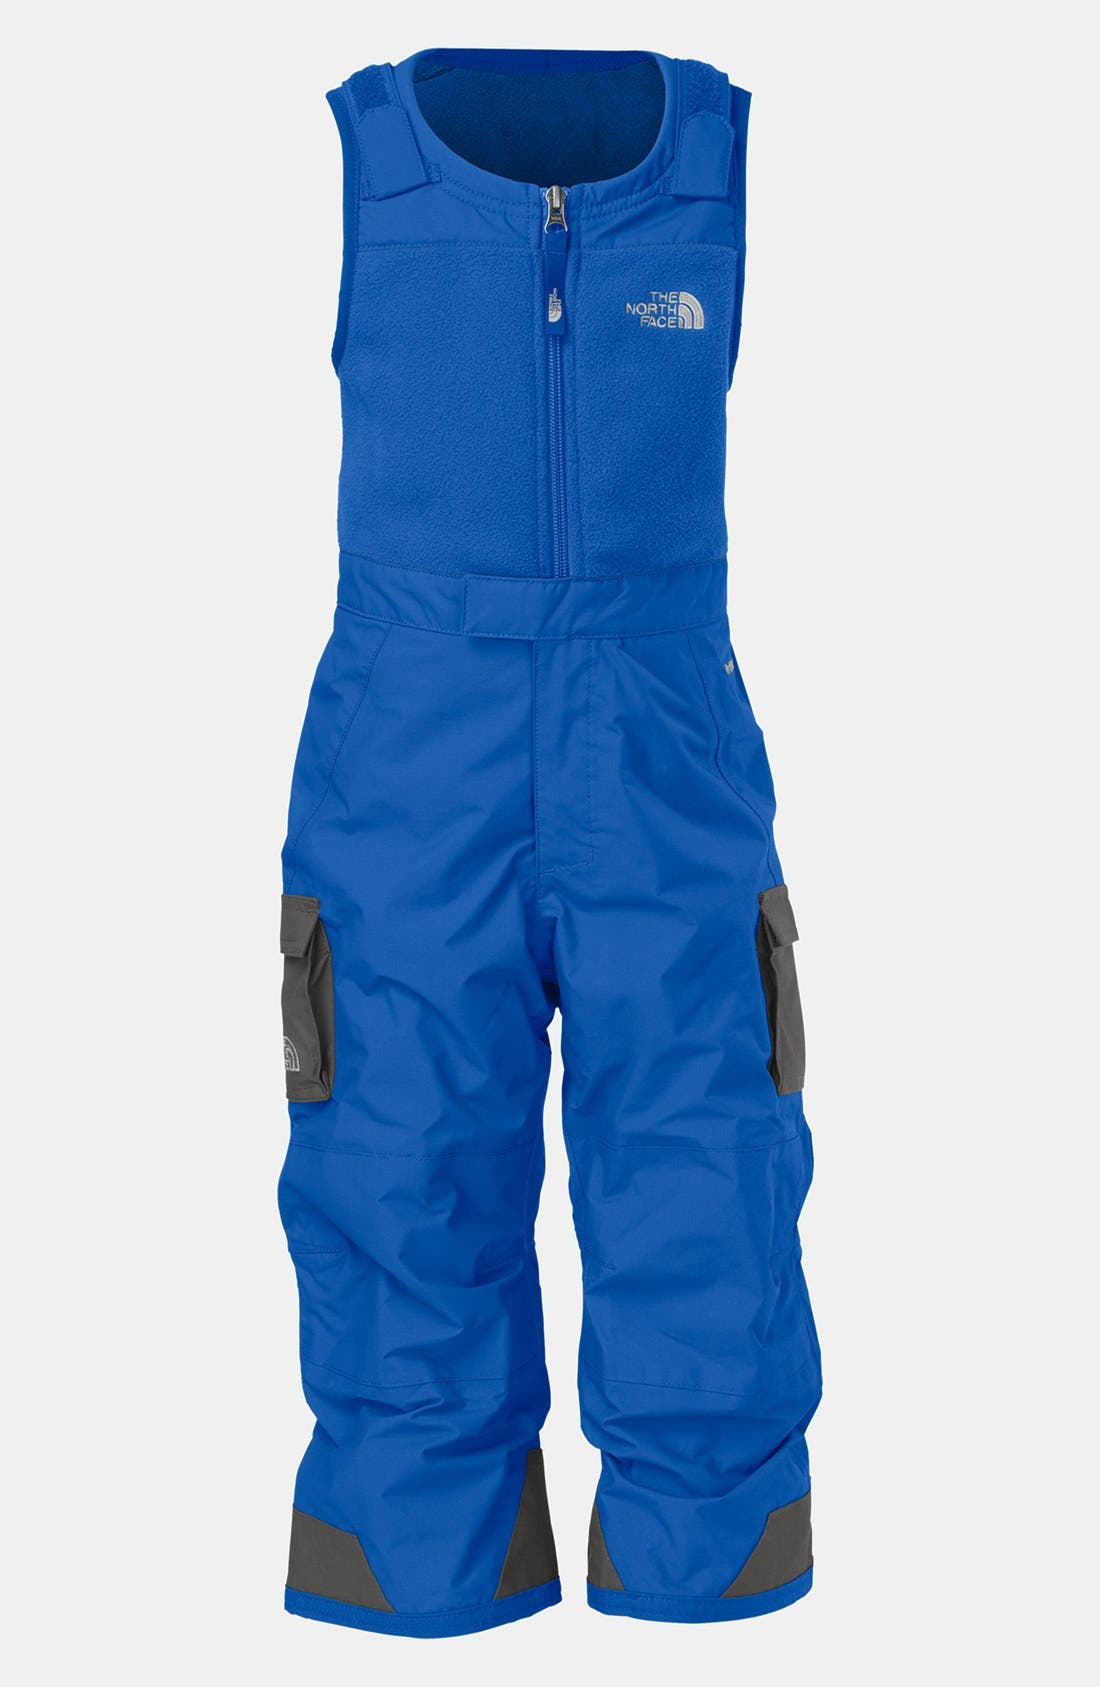 Main Image - The North Face 'Snowdrift' Insulated Bib Overalls (Toddler Boys)